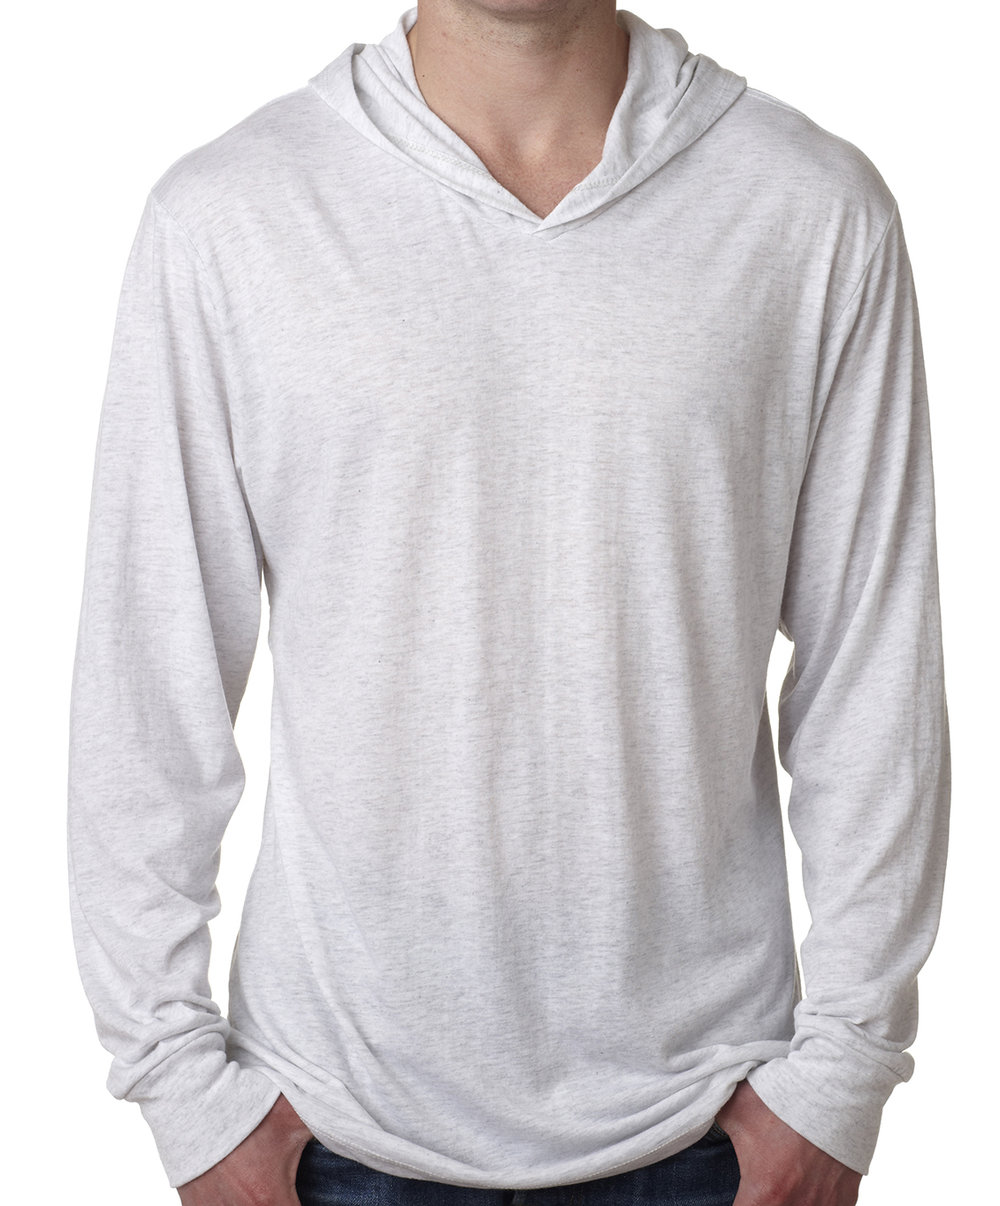 Unisex triblend long sleeve hoodie (cotton, polyester, rayon blend, longer length, super soft feel, $$)